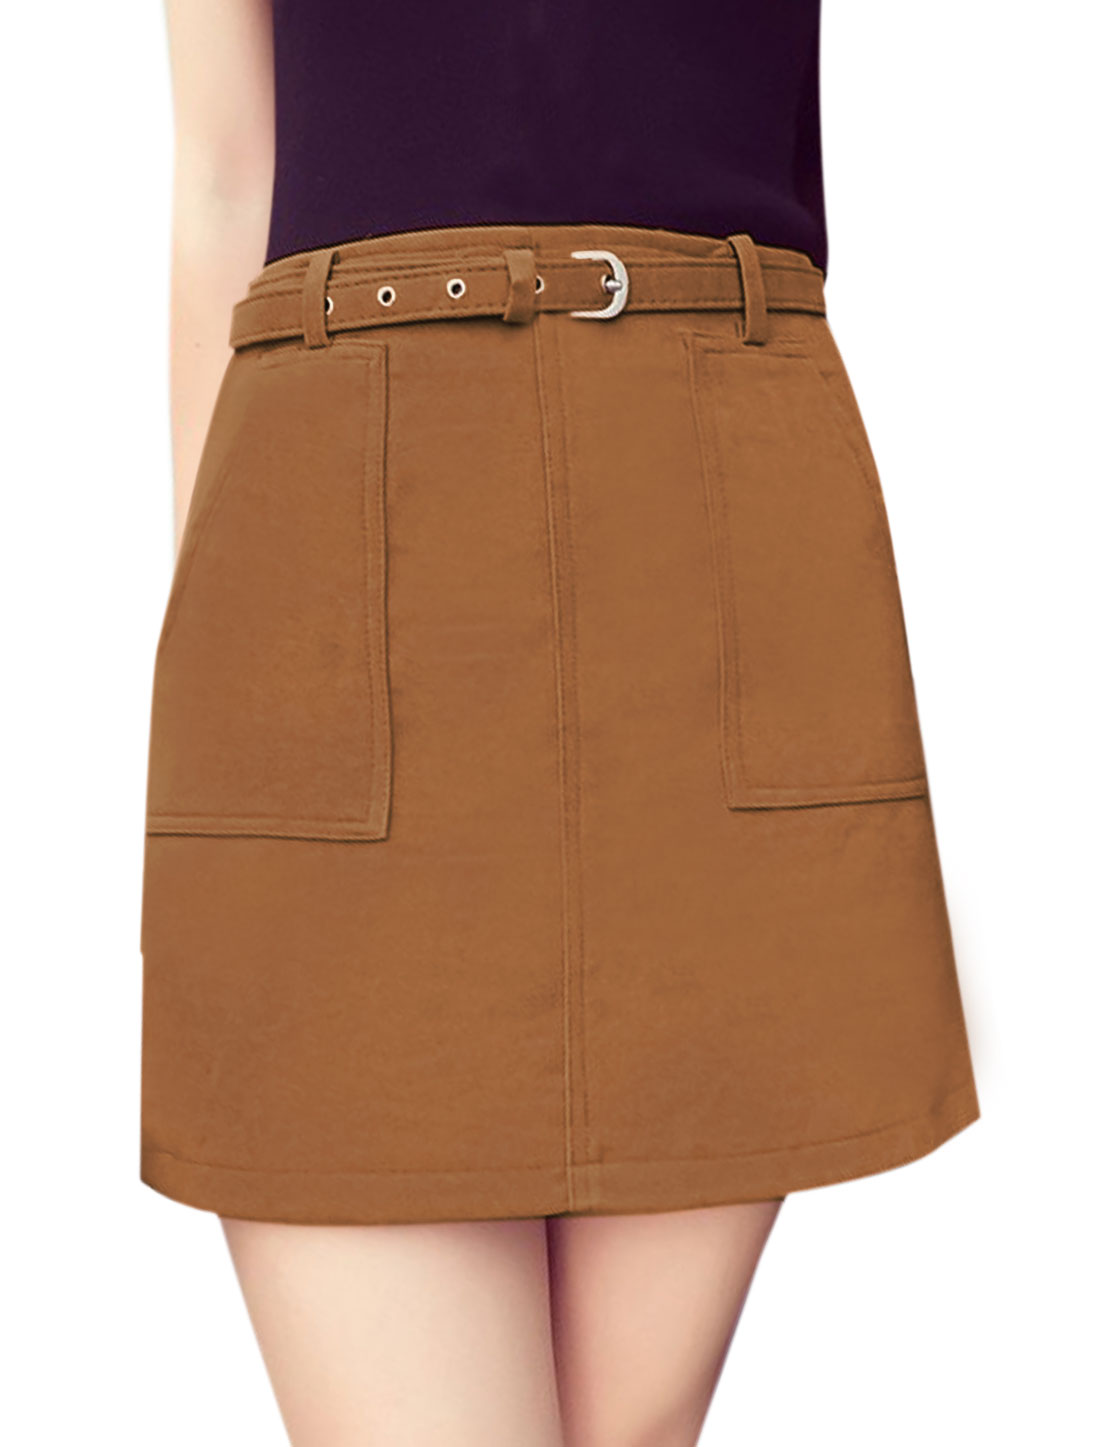 Women High Waist Two Front Pockets A Line Skirt w Belt Brown L